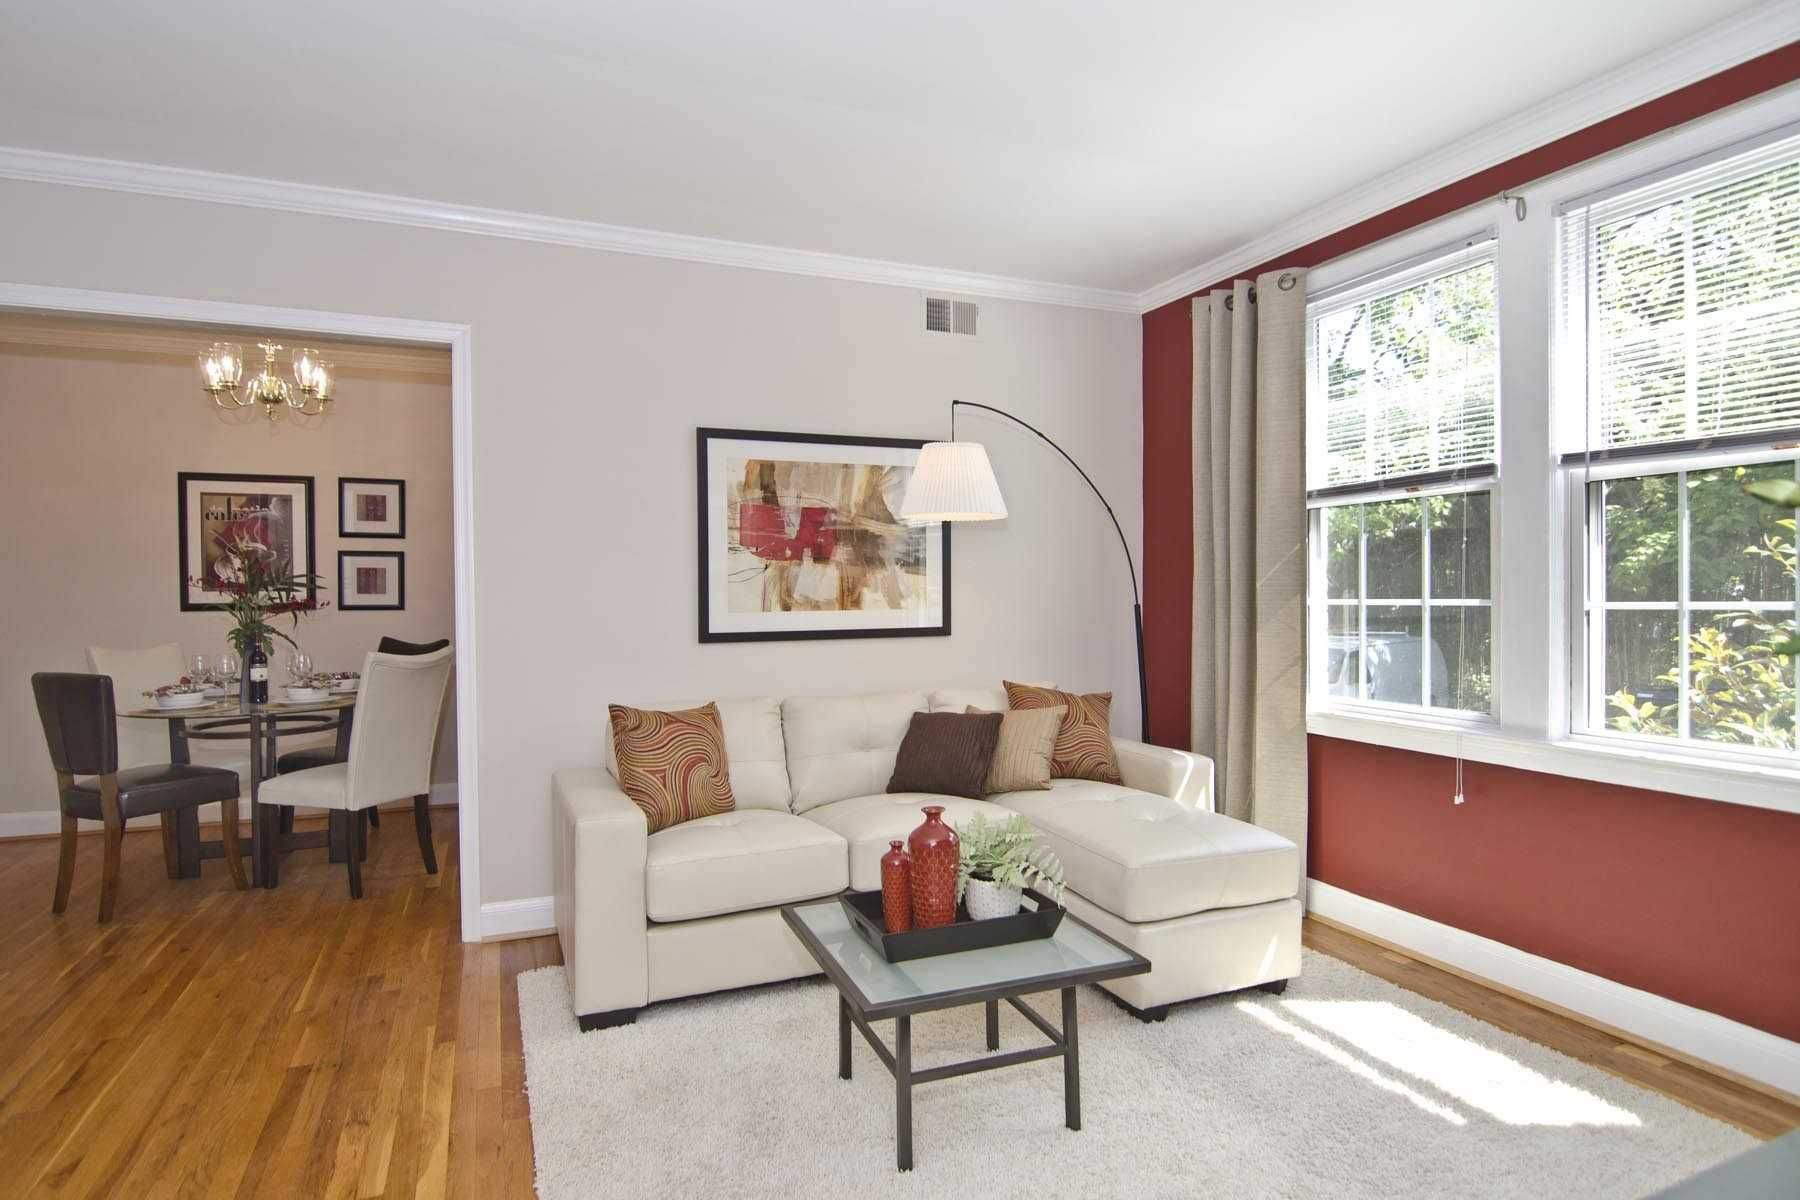 Second Chance Apartments In Conyers Ga Apartment Room Furnished Apartments For Rent Cheap Apartment For Rent